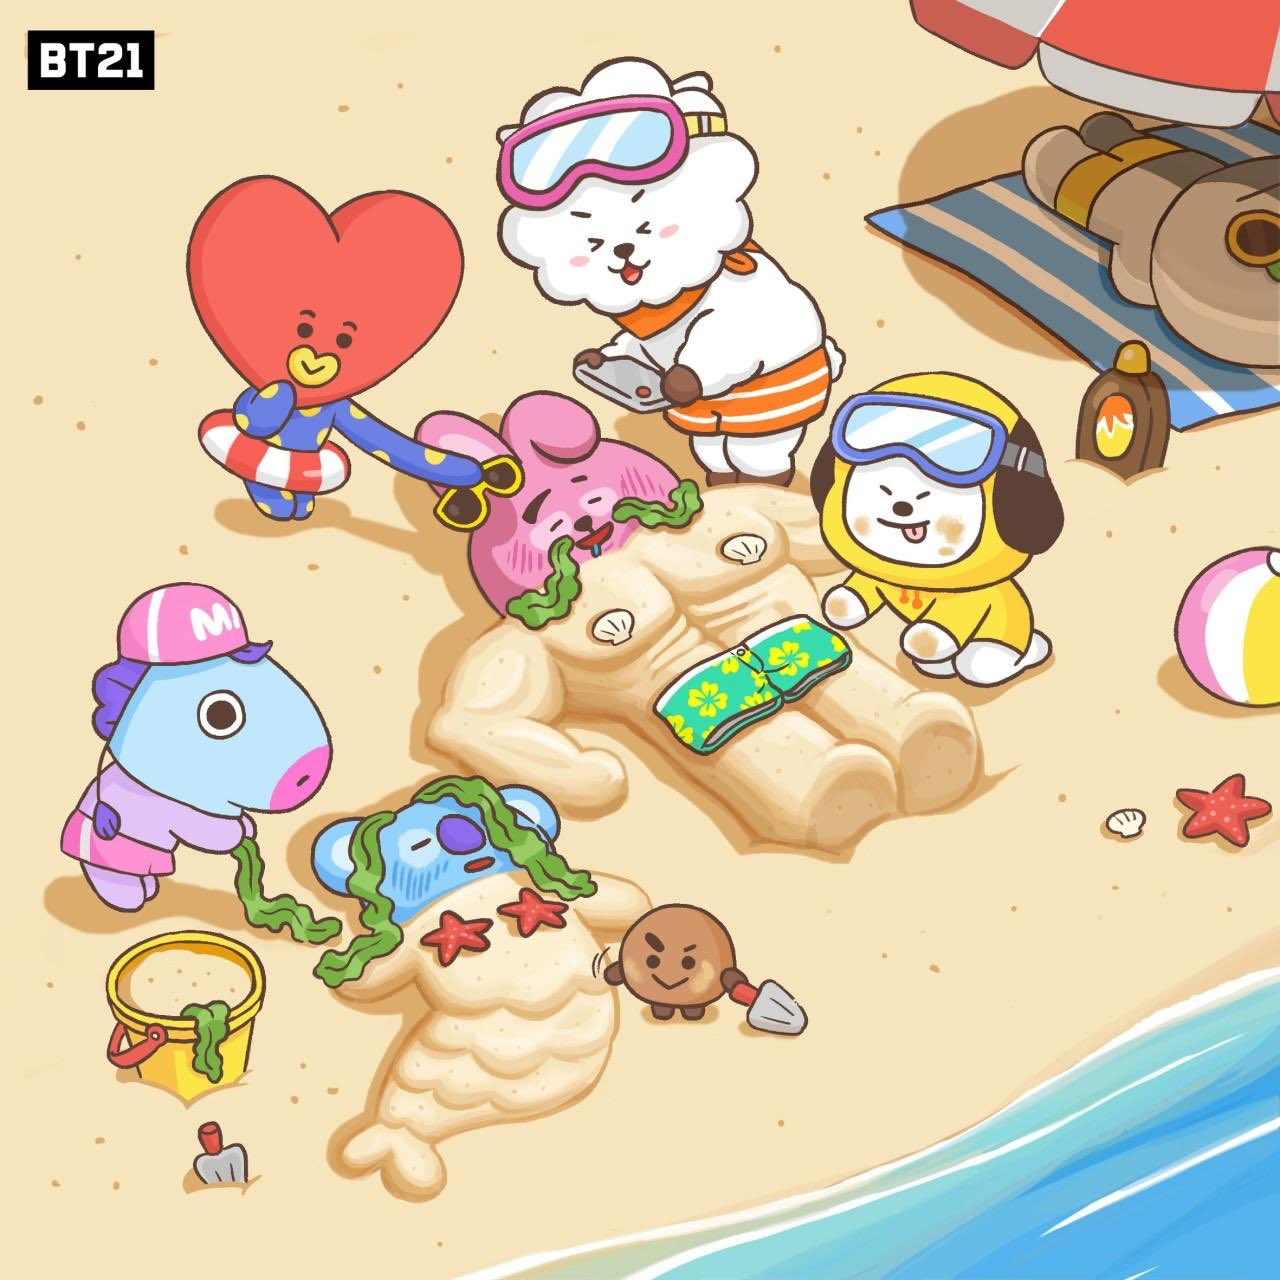 This is how we roll on the beach! ☀️�� #BT21 #Vacation #Cool #Summer https://t.co/MwN7vv7VMw